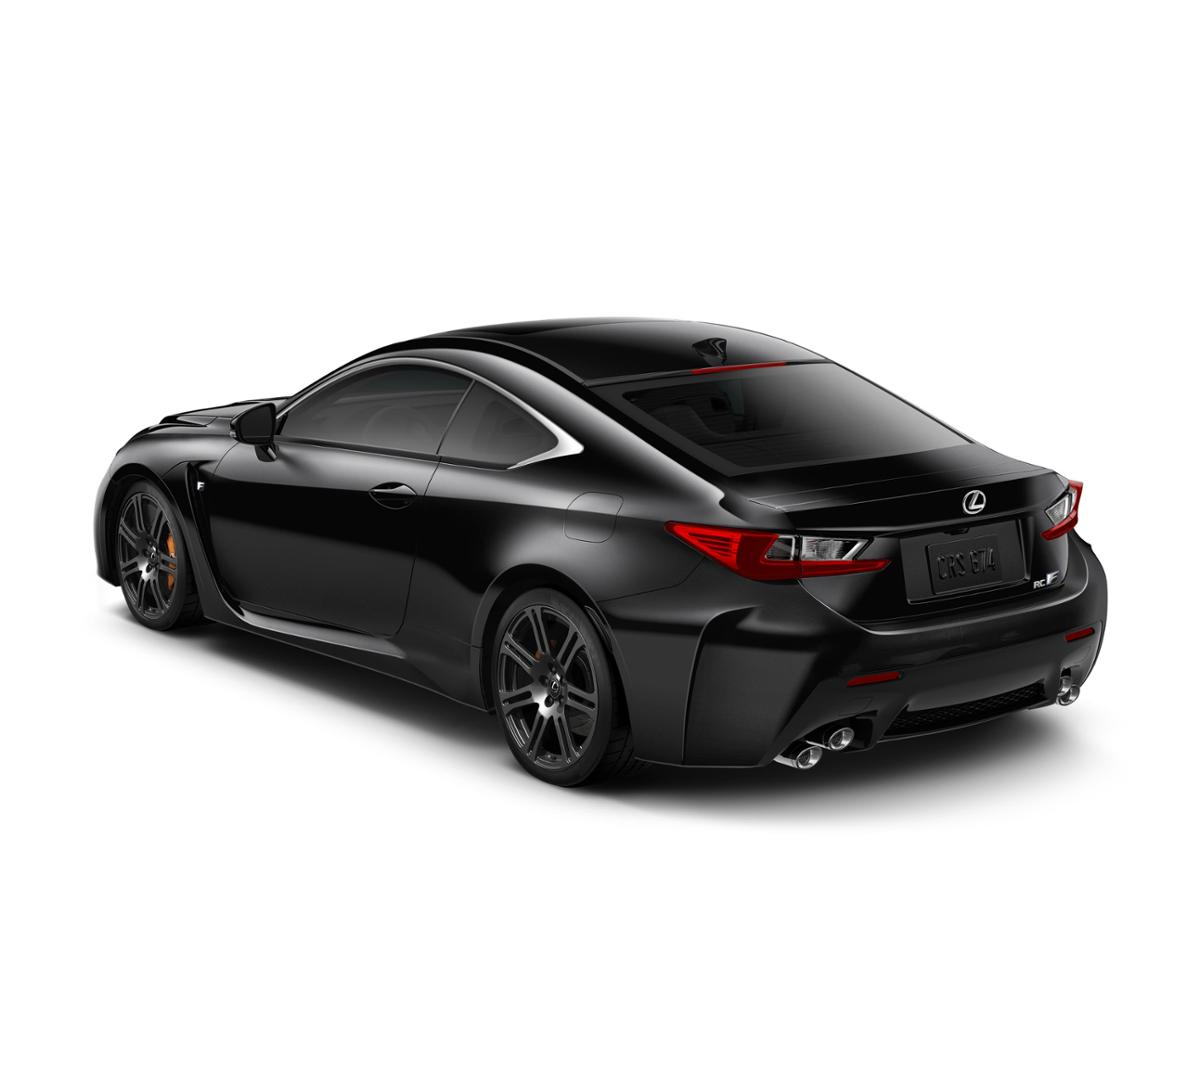 2017 Lexus Rc Exterior: Towson Caviar 2017 Lexus RC F: Used Car For Sale -TY22224